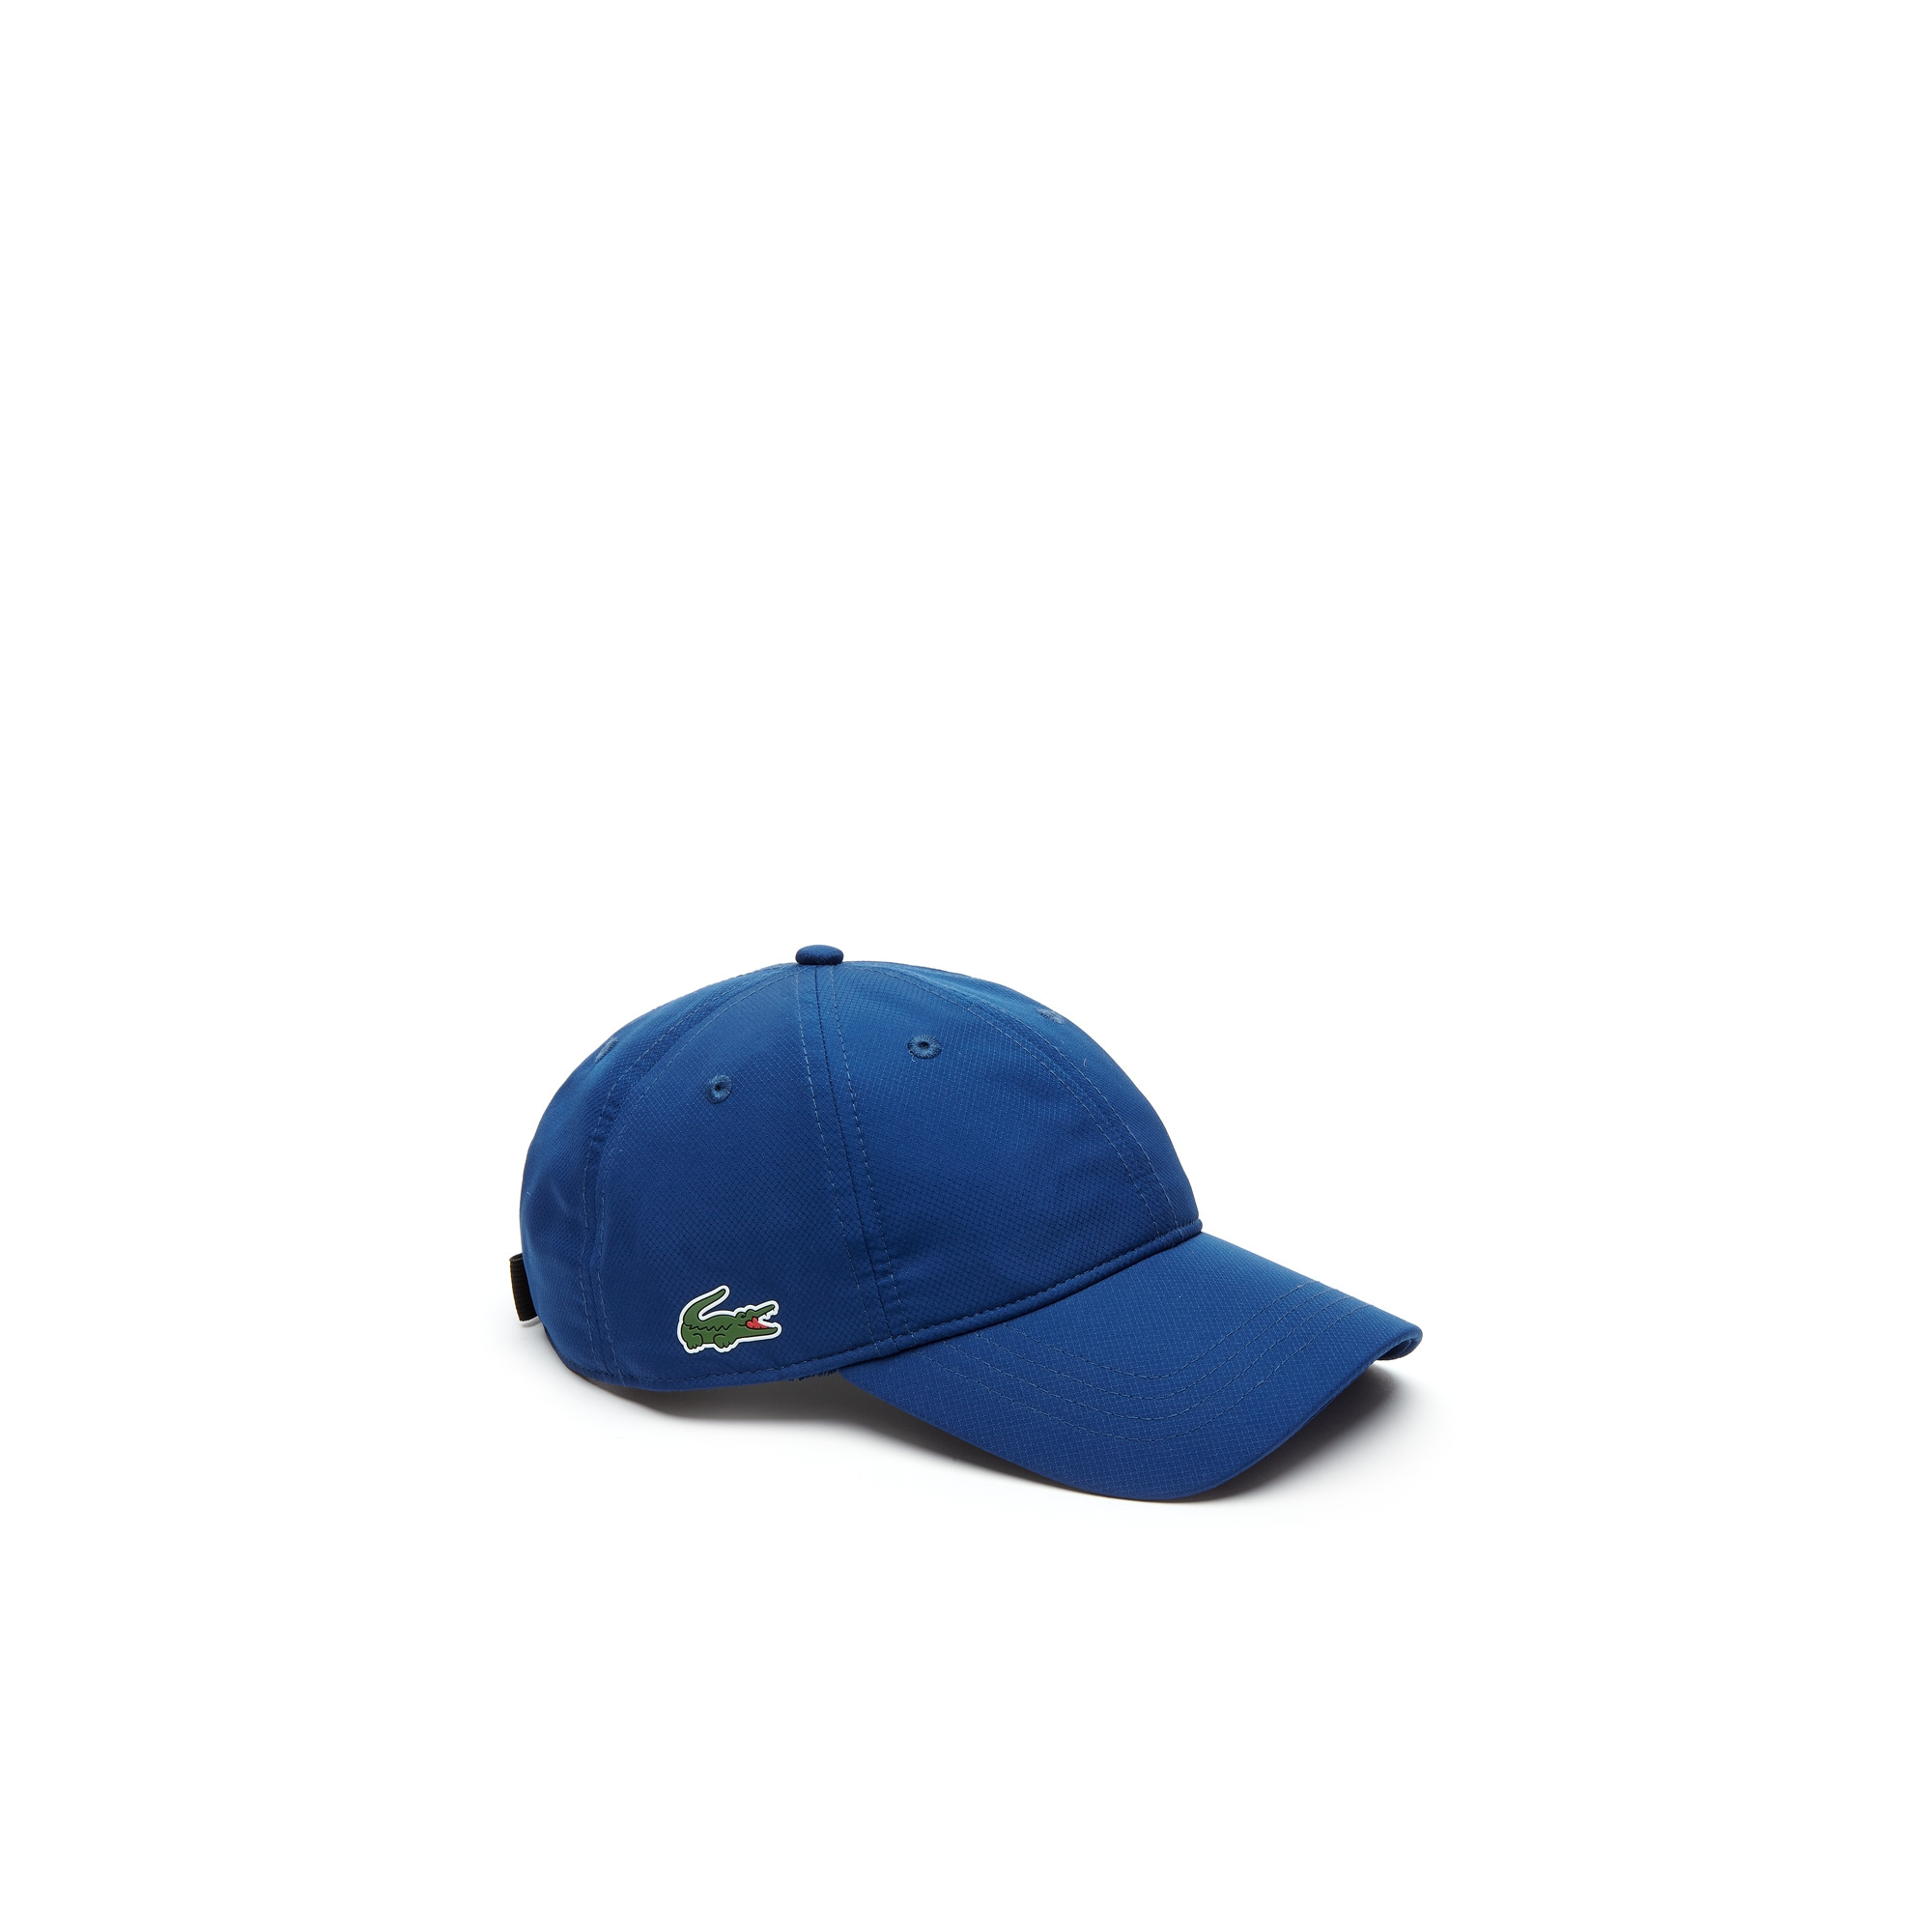 Men's Lacoste SPORT cap in solid diamond weave taffeta